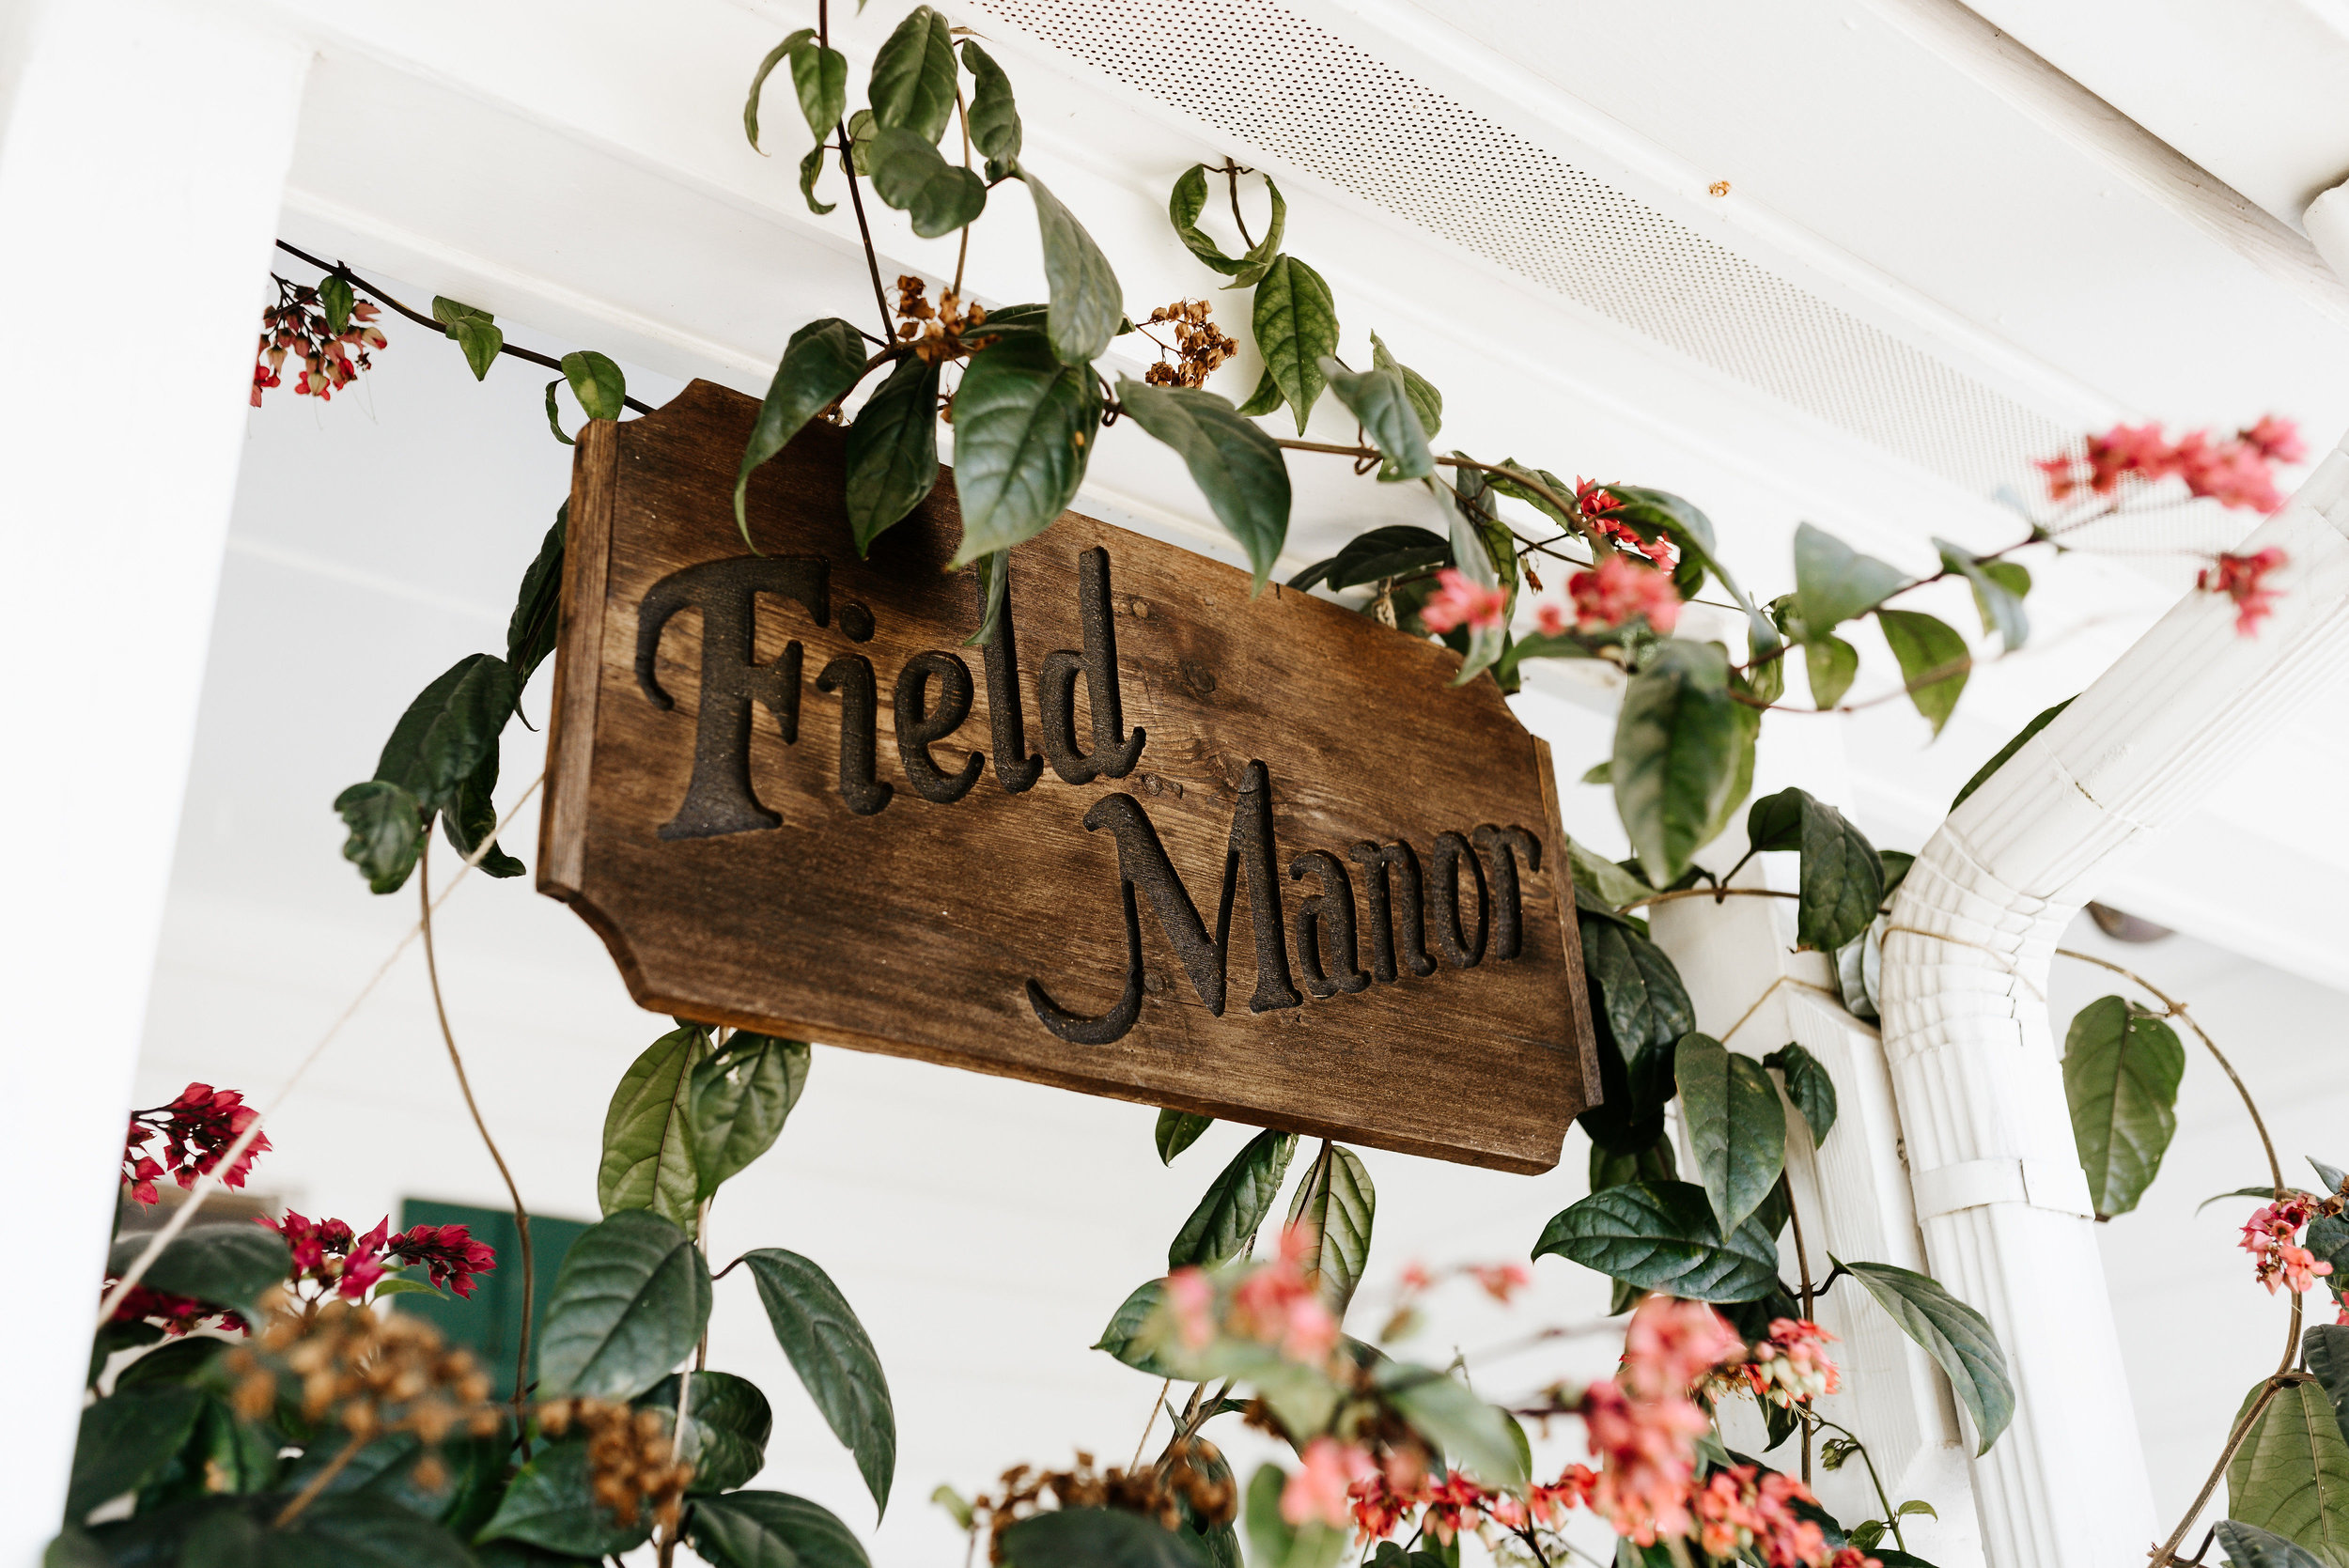 Field_Manor_Wedding_Styled_Shoot_Merritt_Island_Florida_Photography_by_V_1315.jpg